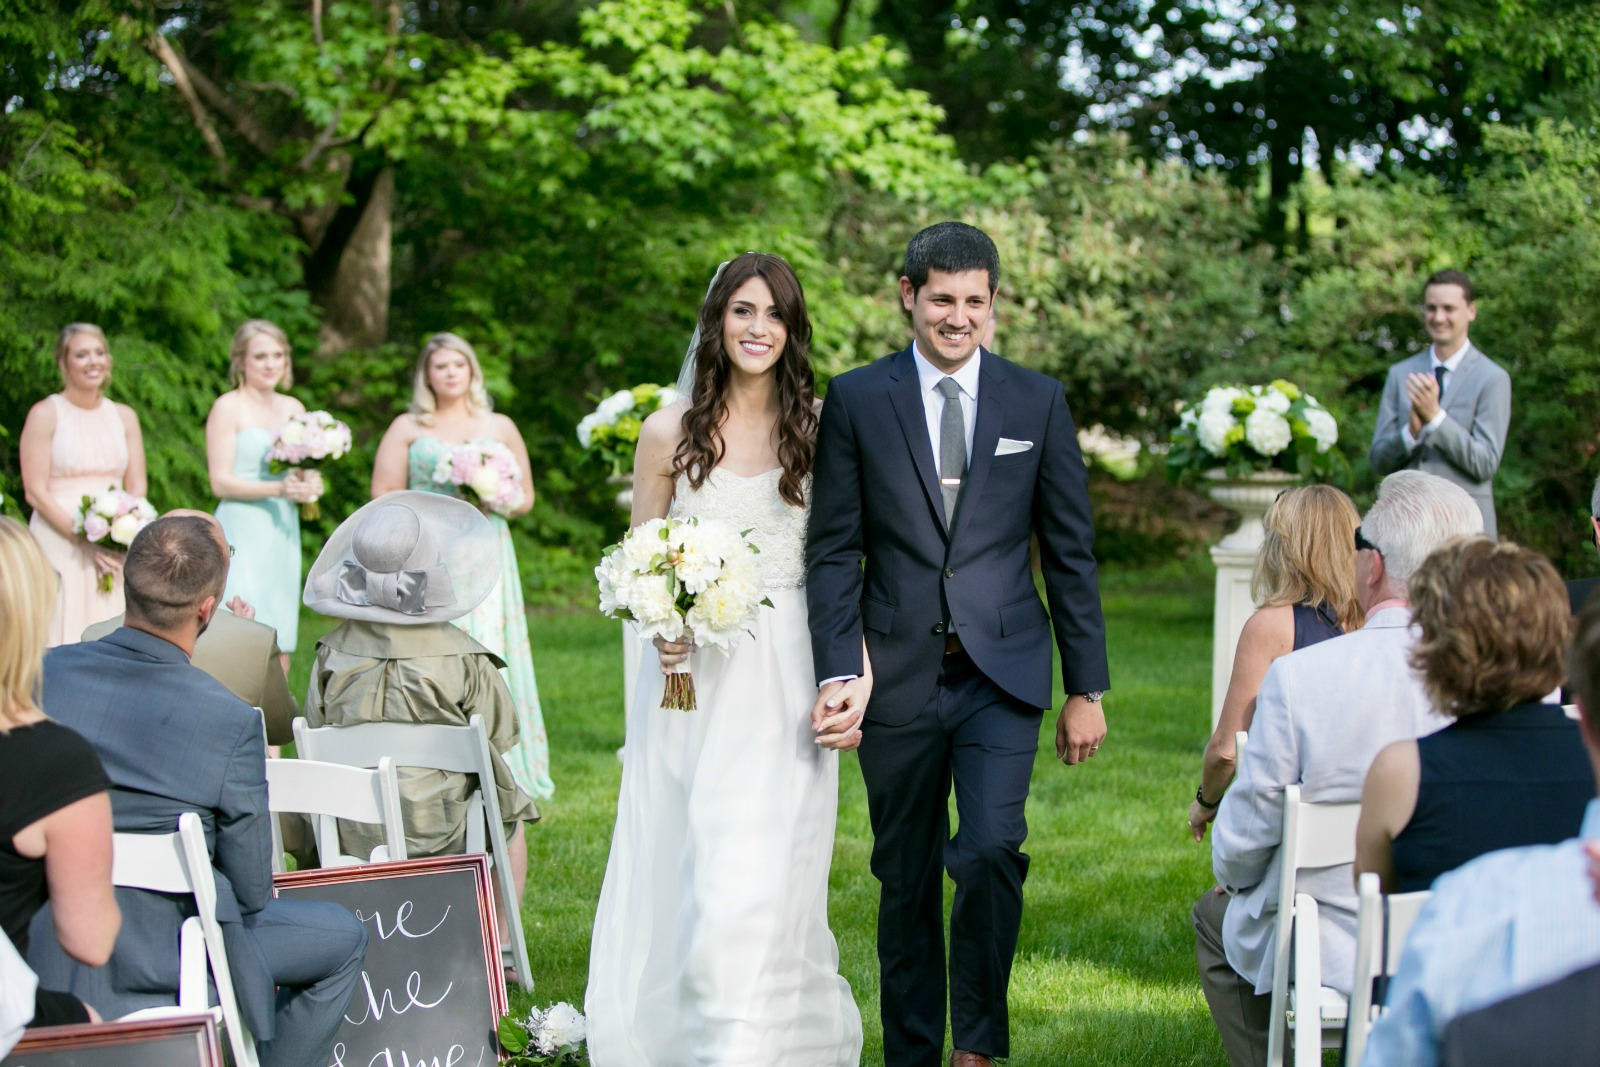 Why We Waited Over a Decade to Get Married